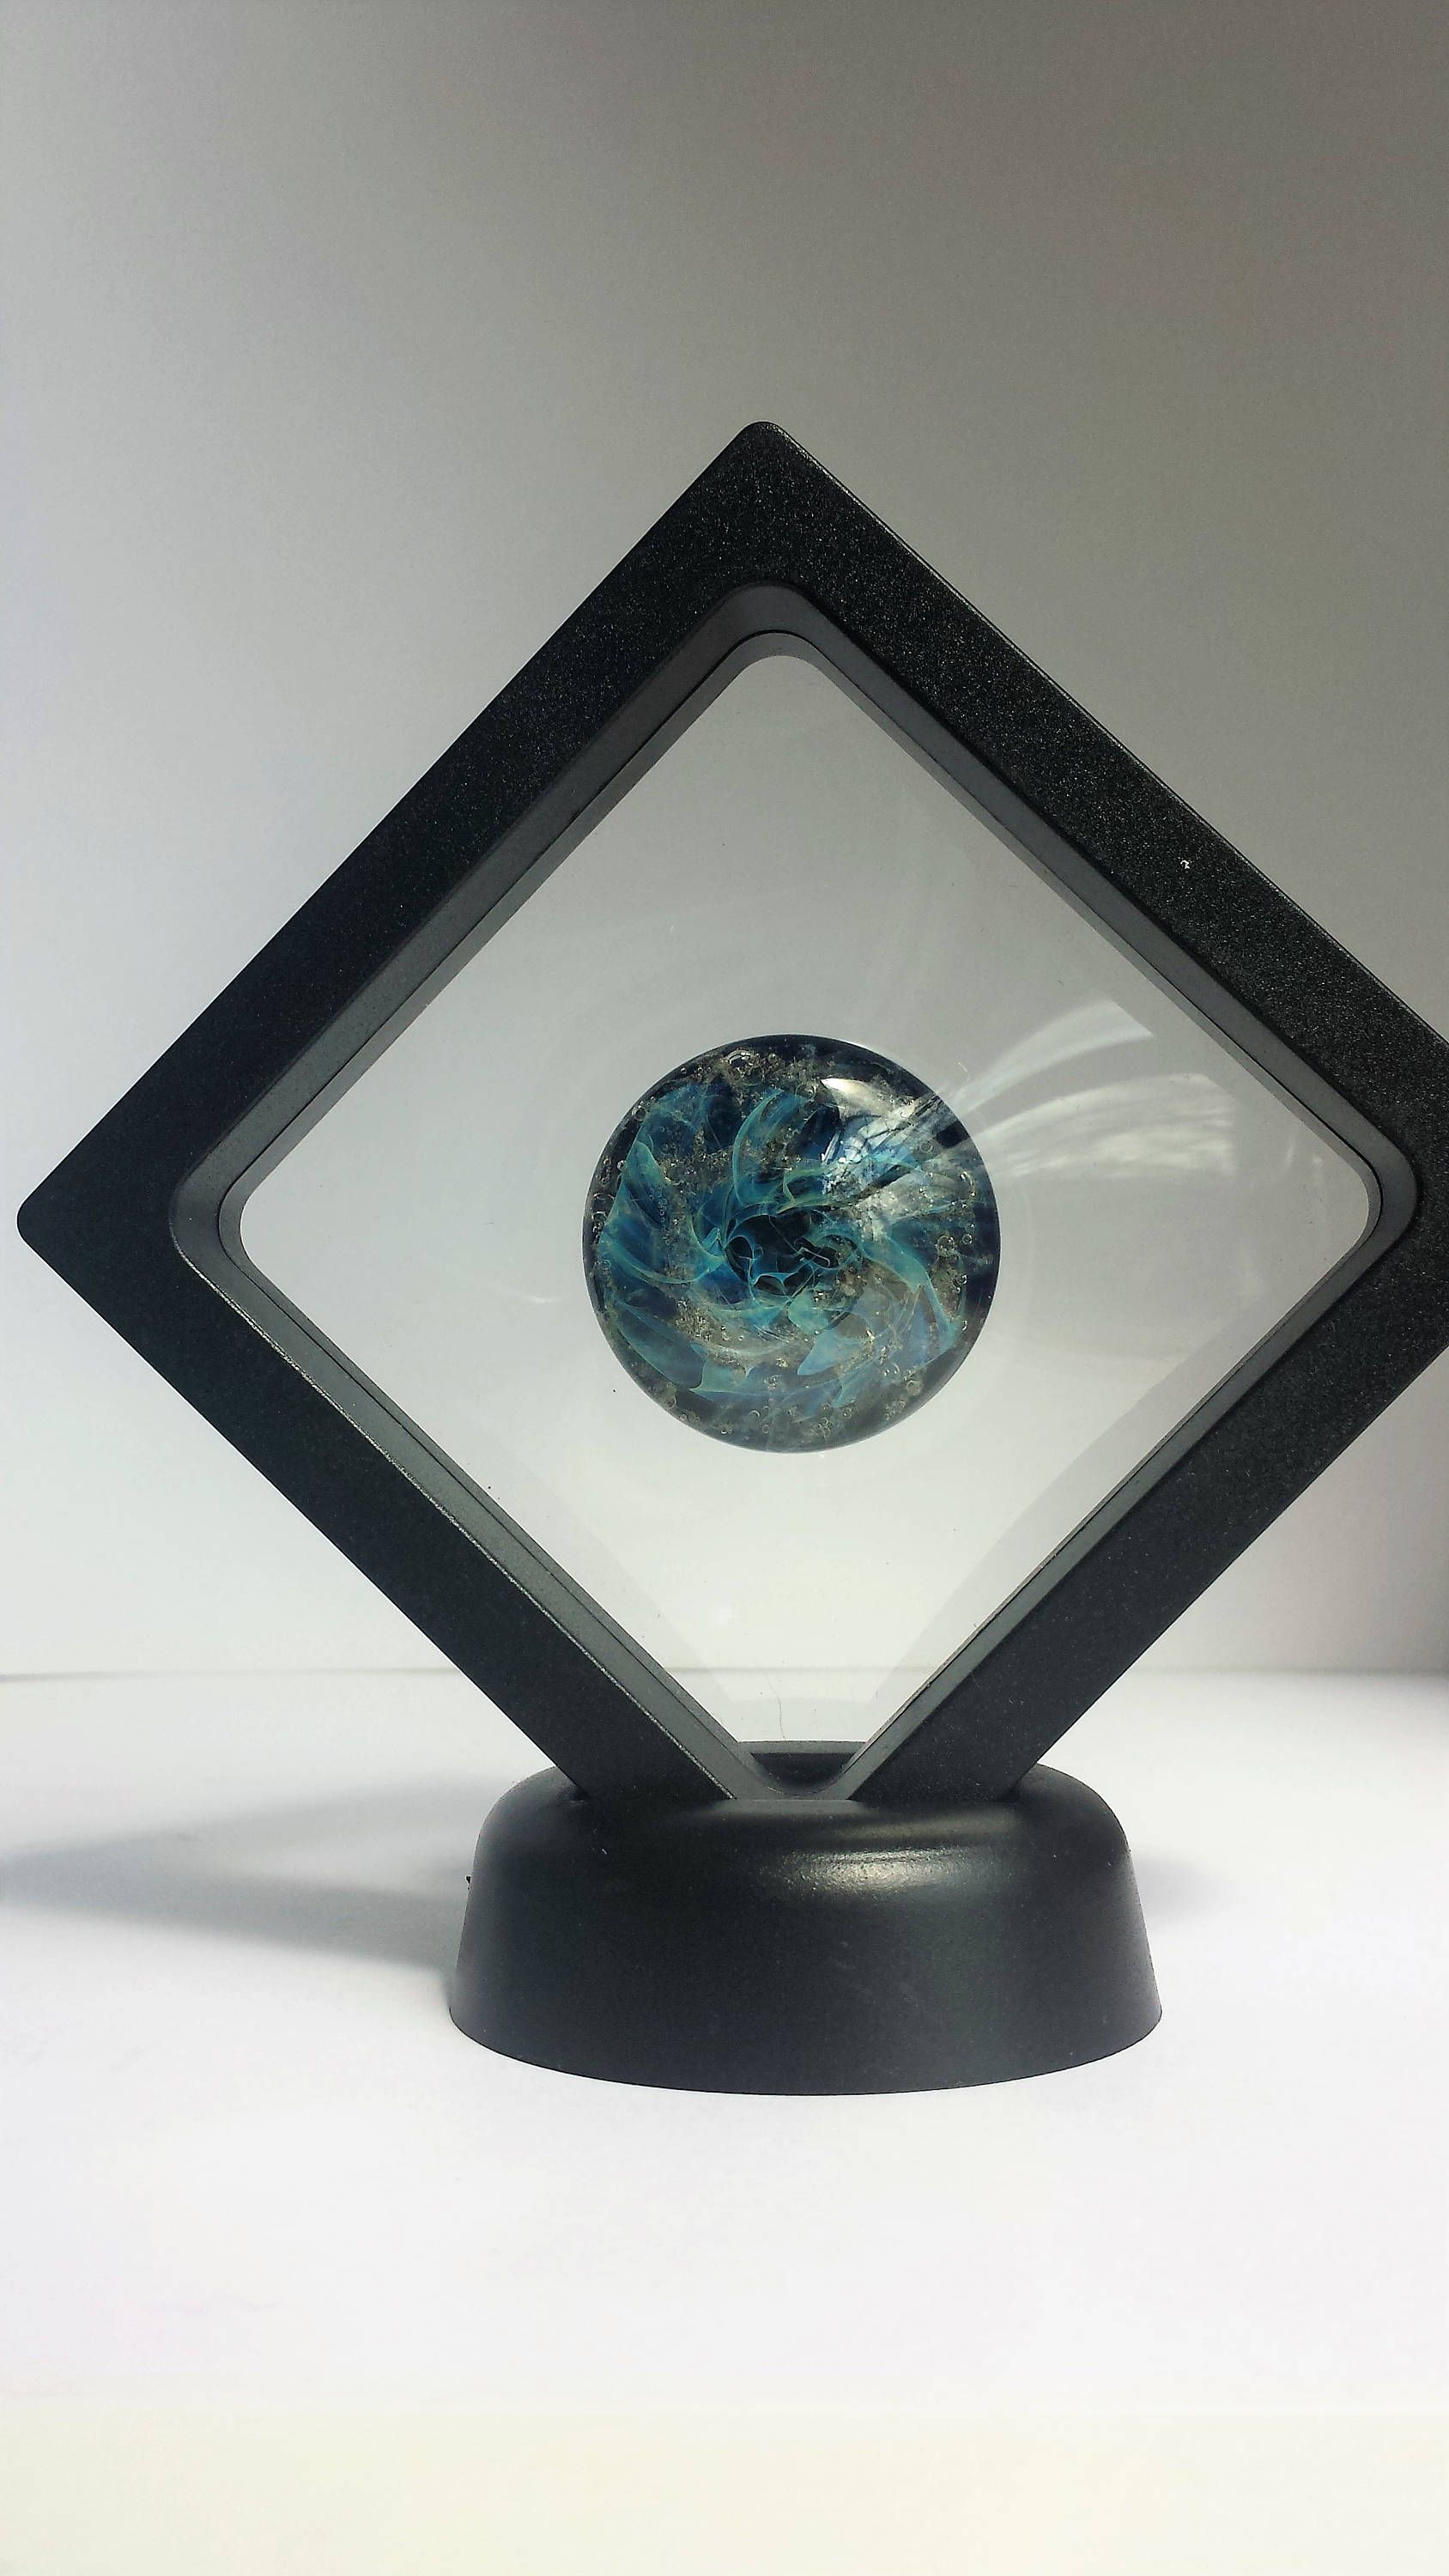 Photo of Cremation Stones for Ashes. Blown Glass Memory stone. StarDust Touchstone. Ash to Glass. Pet Urn Memorial Stones Jewelry. Cremate Jewelry